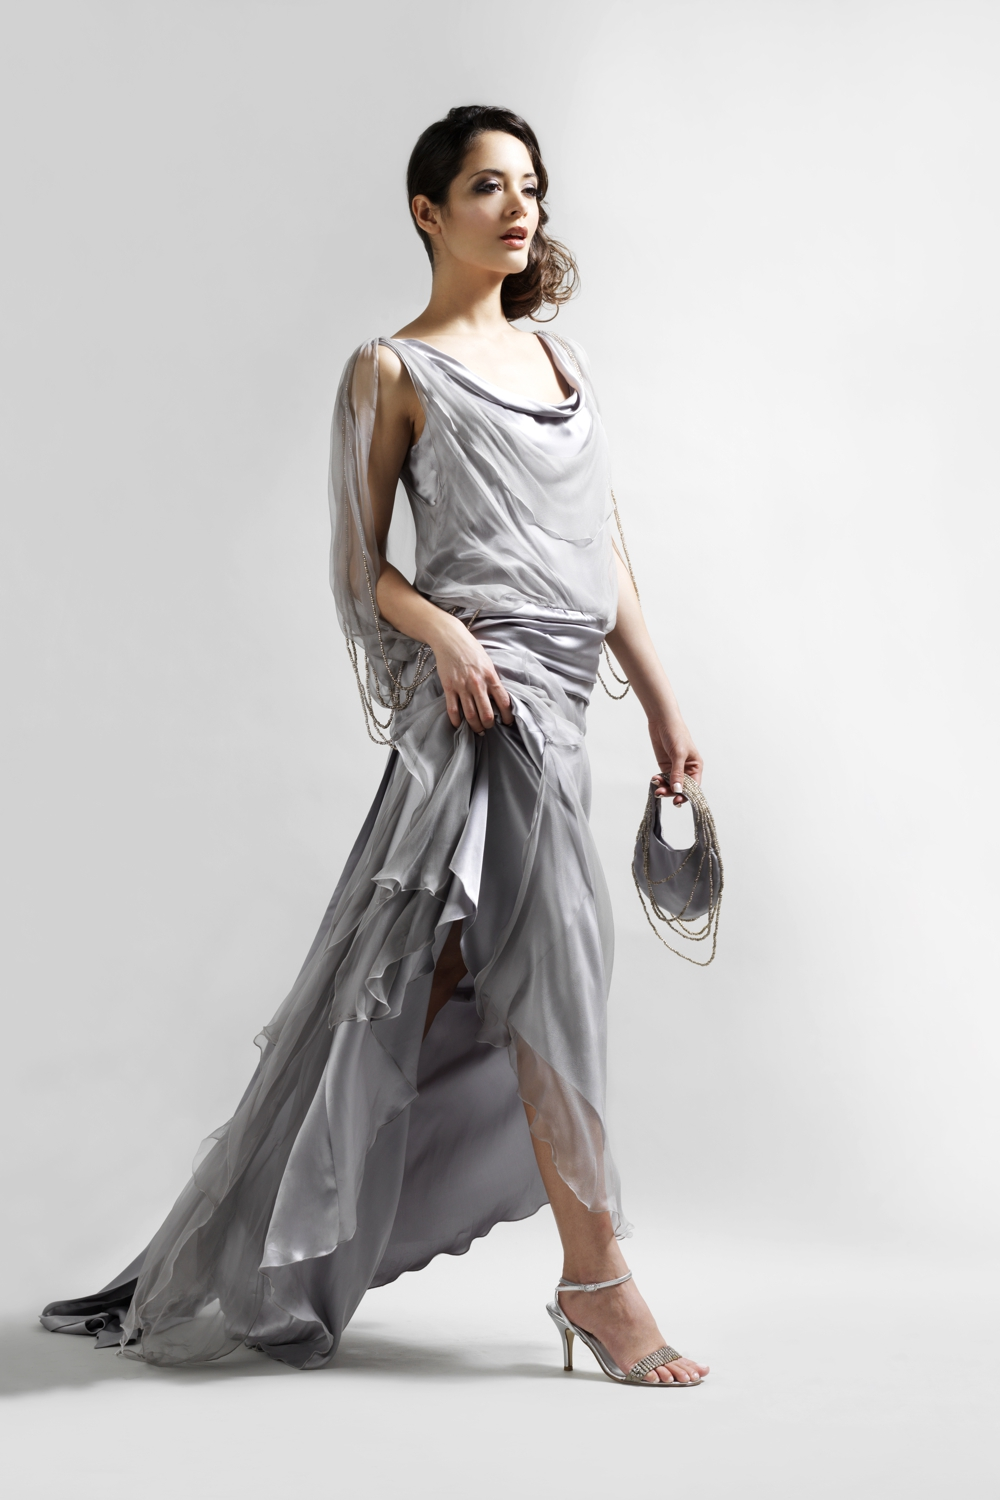 Silver silk chiffon vintage style evening gown